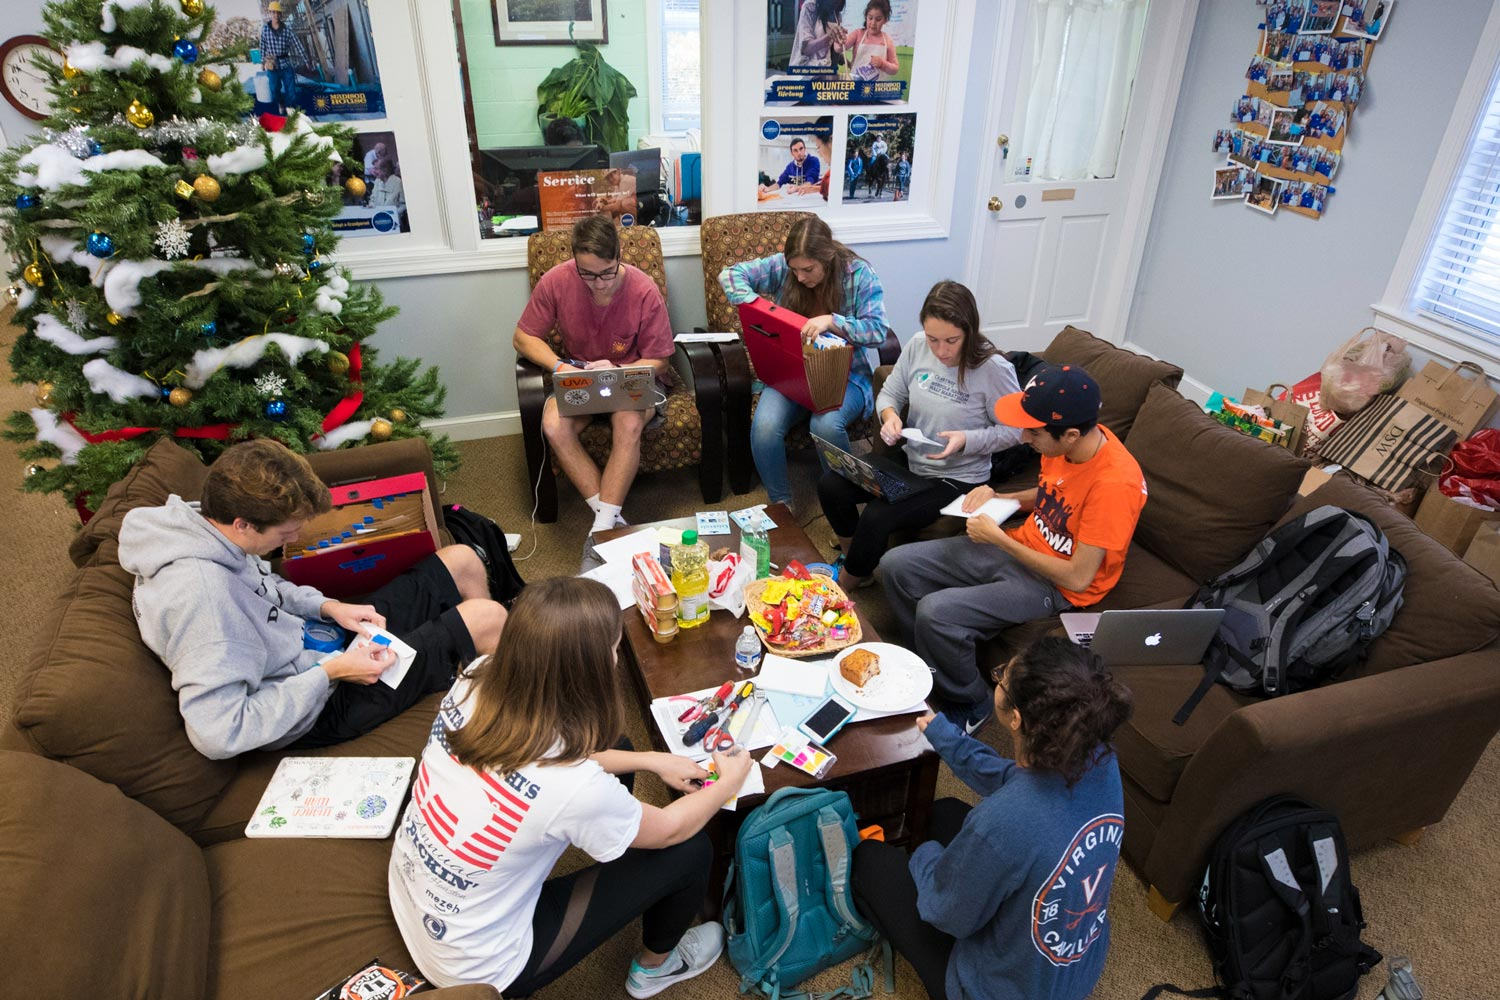 Madison House student volunteers, from left on couch, clockwise: Ally Bollettino, Bryce Griffin, Cameron Walker, Carla Weidner, Meredith Hughes, Michael Bassilios and Salwa Malik.